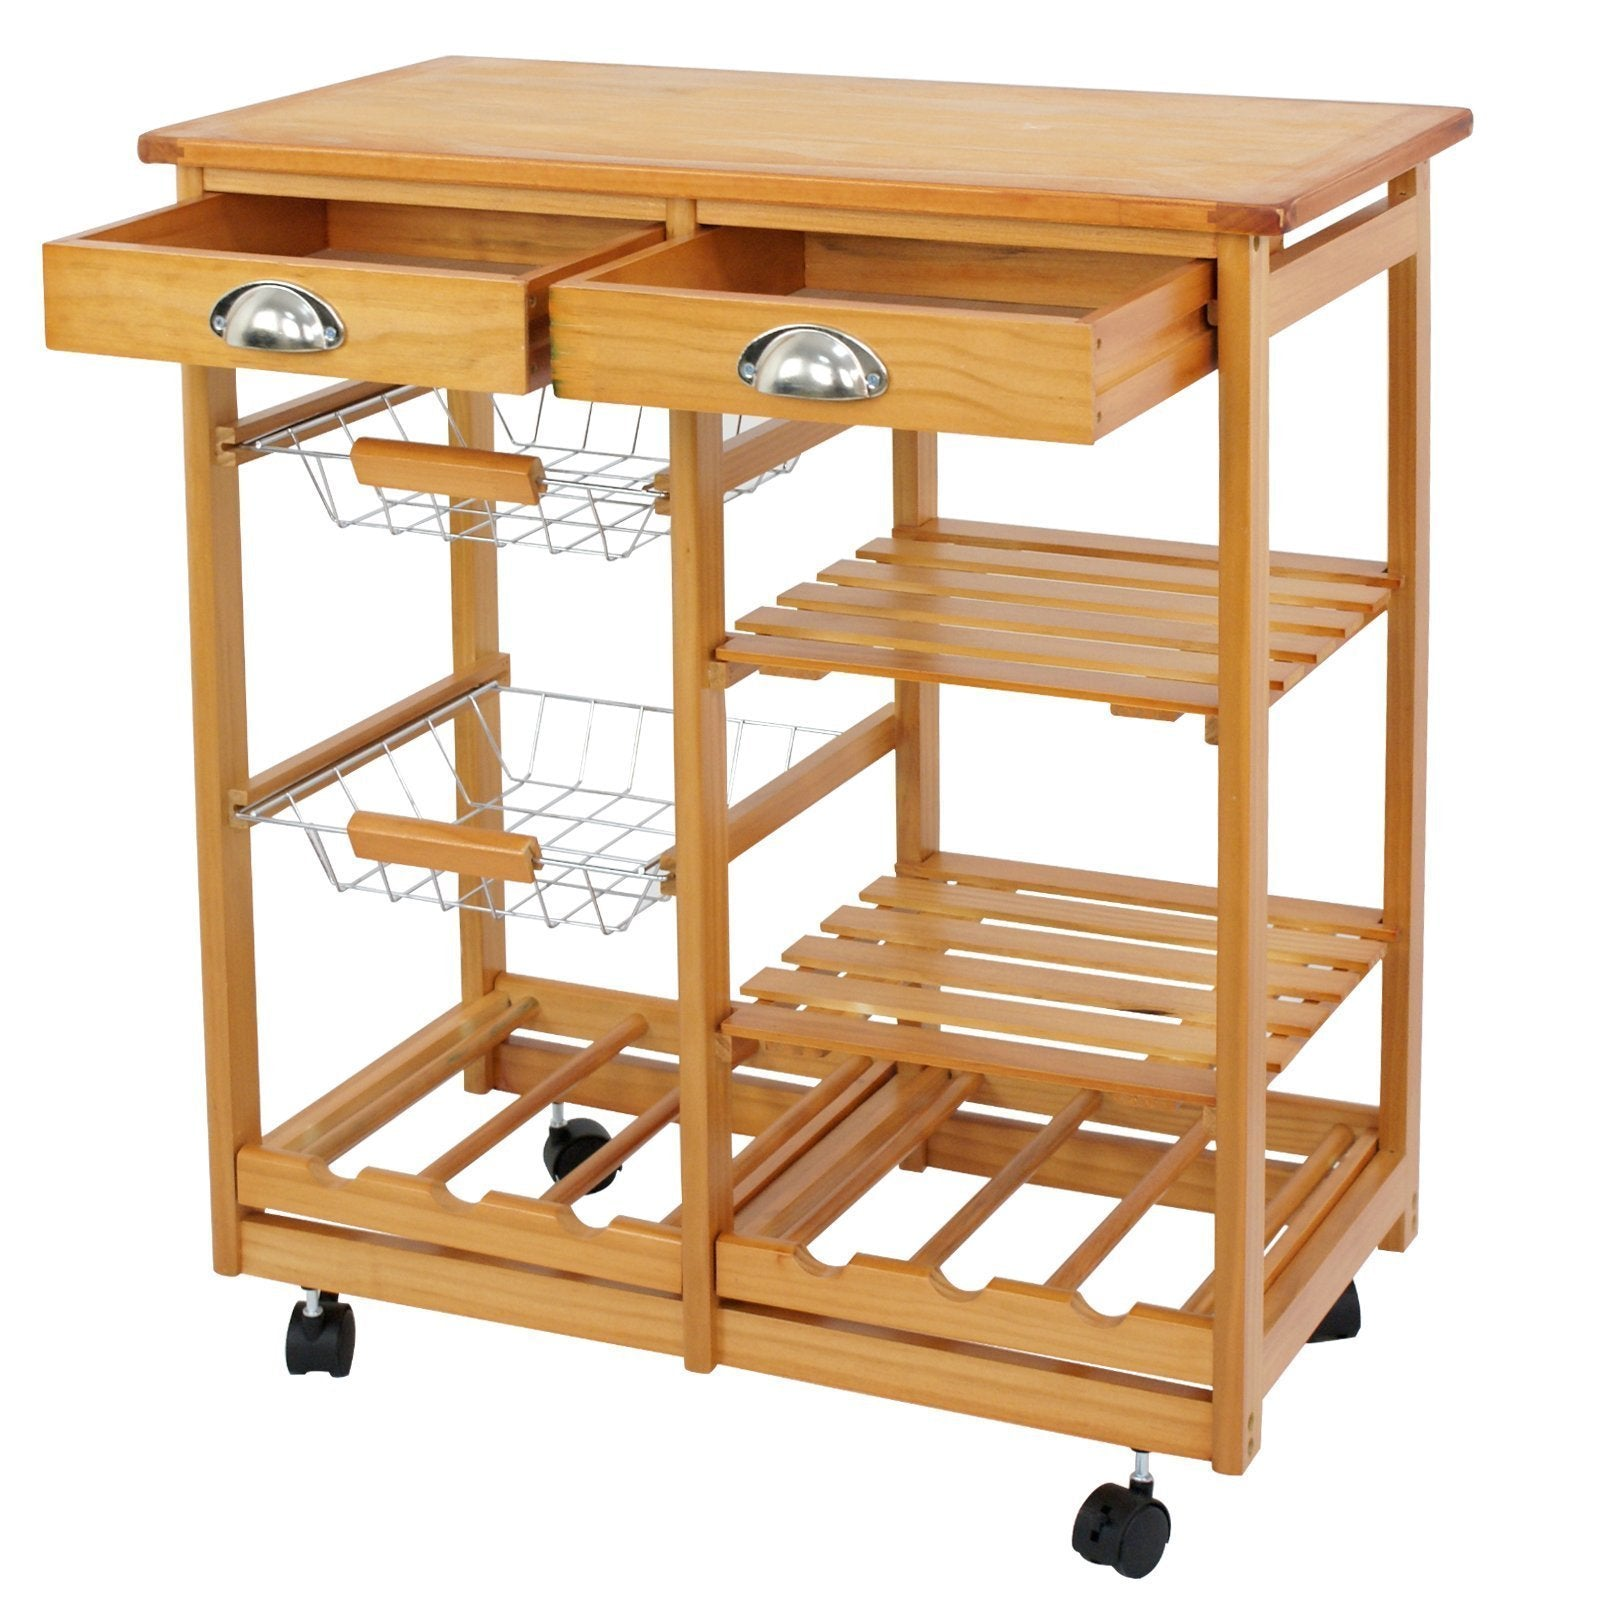 Nova Microdermabrasion Rolling Wood Kitchen Island Storage Trolley Utility Cart Rack w/Storage Drawers/Baskets Dining Stand w/Wheels Countertop (Wood)